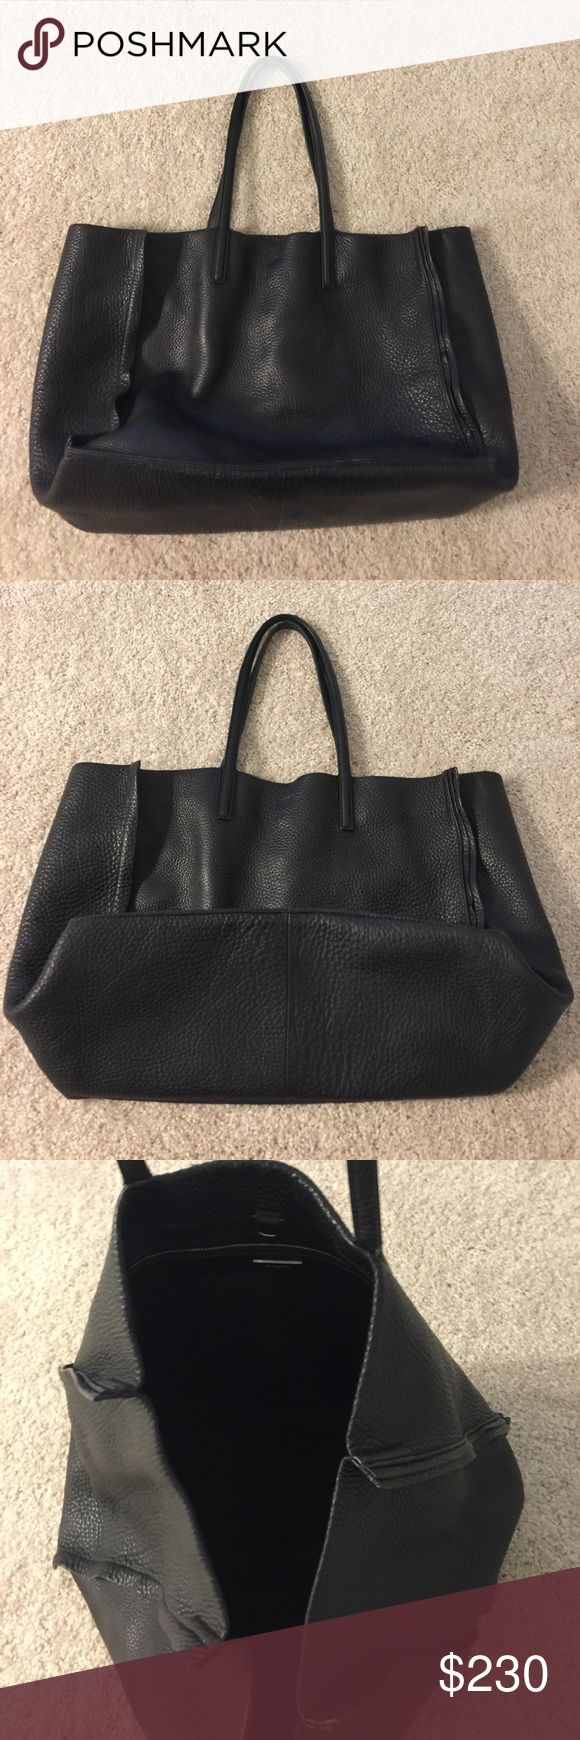 Aritzia auxiliary tote Black pebbled leather. Only used a few times. Wear on the handles (the price reduction reflects this). Aritzia Bags Totes